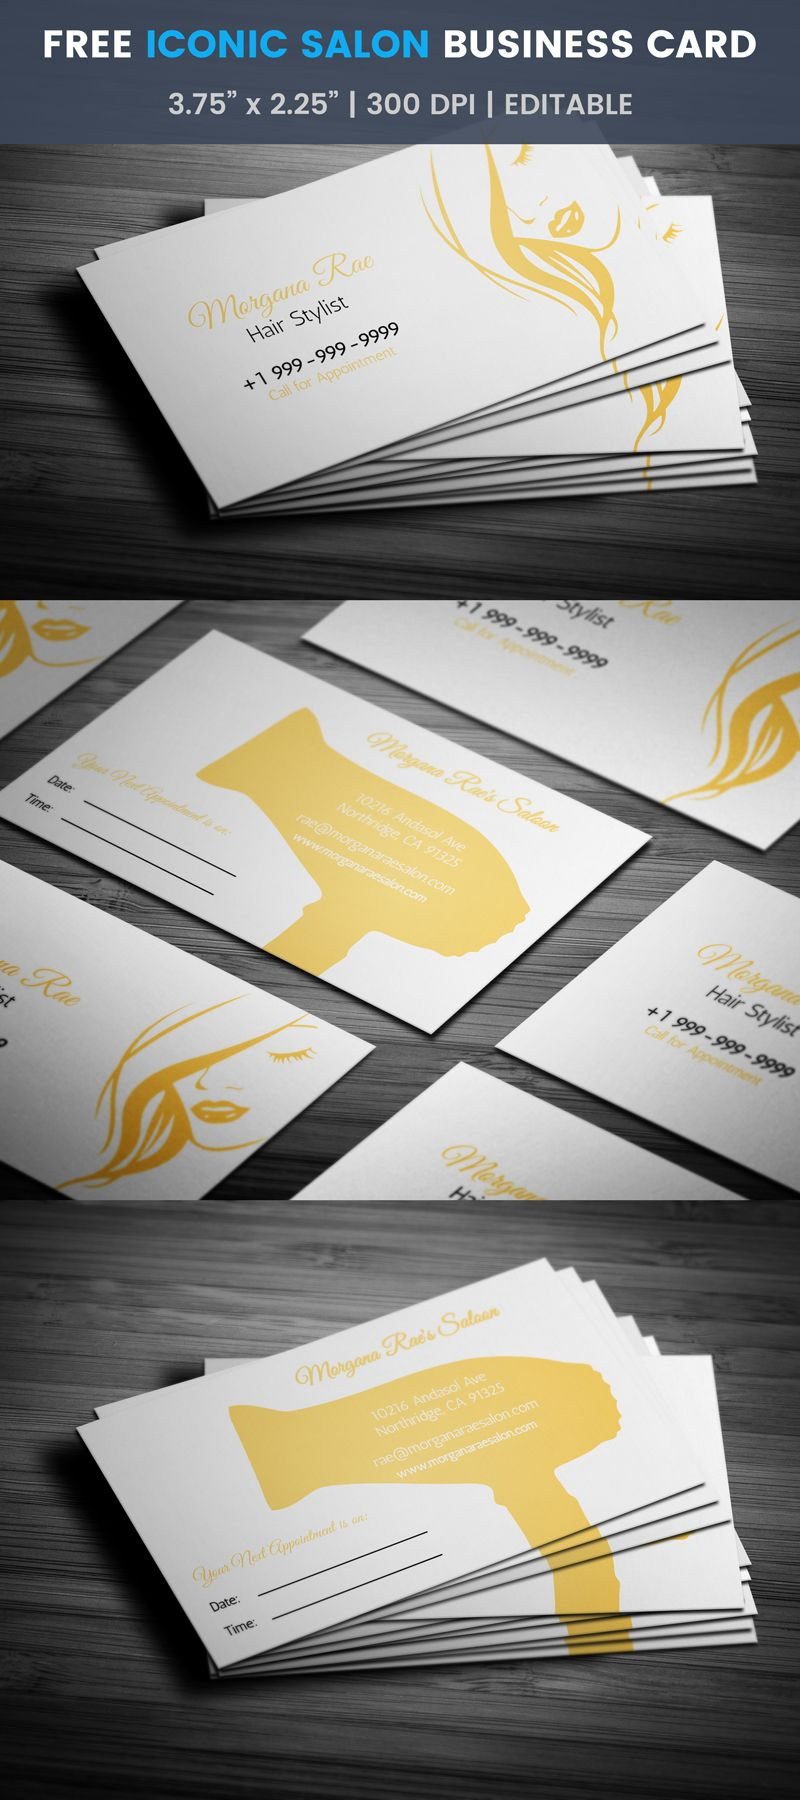 Stylish womens hair salon business card template style salon stylish womens hair salon business card template style salon friedricerecipe Images